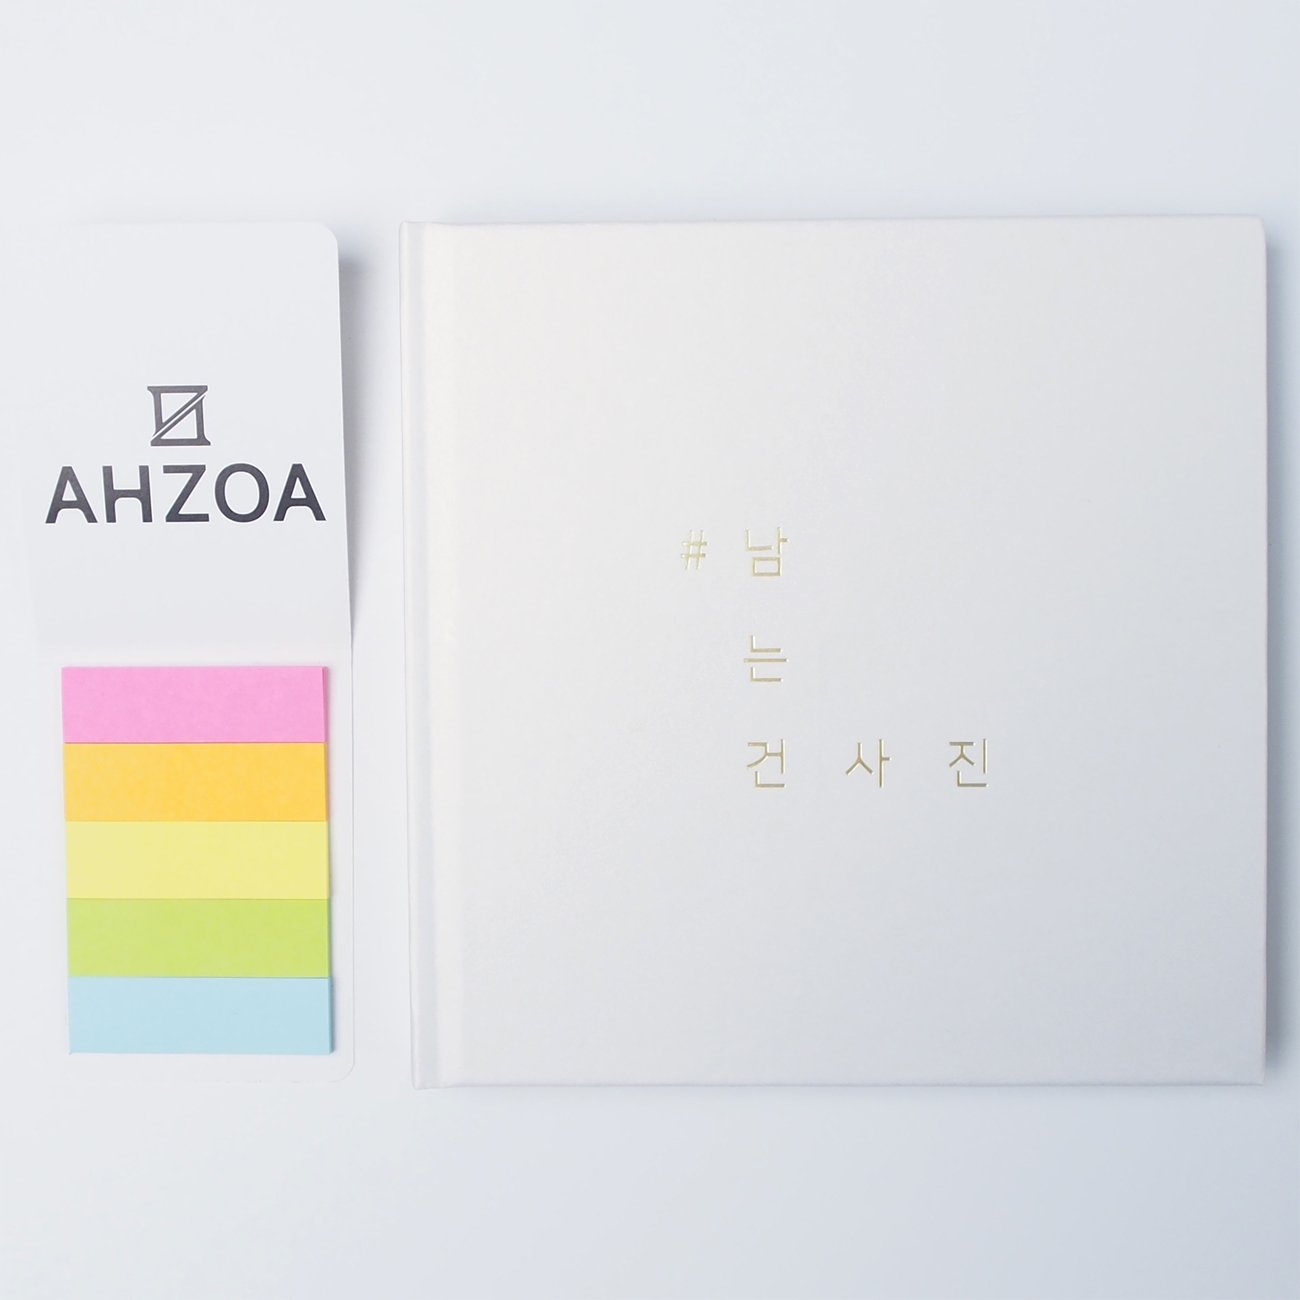 Self-adhesive Photo Album For Instagram with AHZOA 5 Colors Sticky Flag, Black Magnetic Pages, Hardcover Hardback (white)